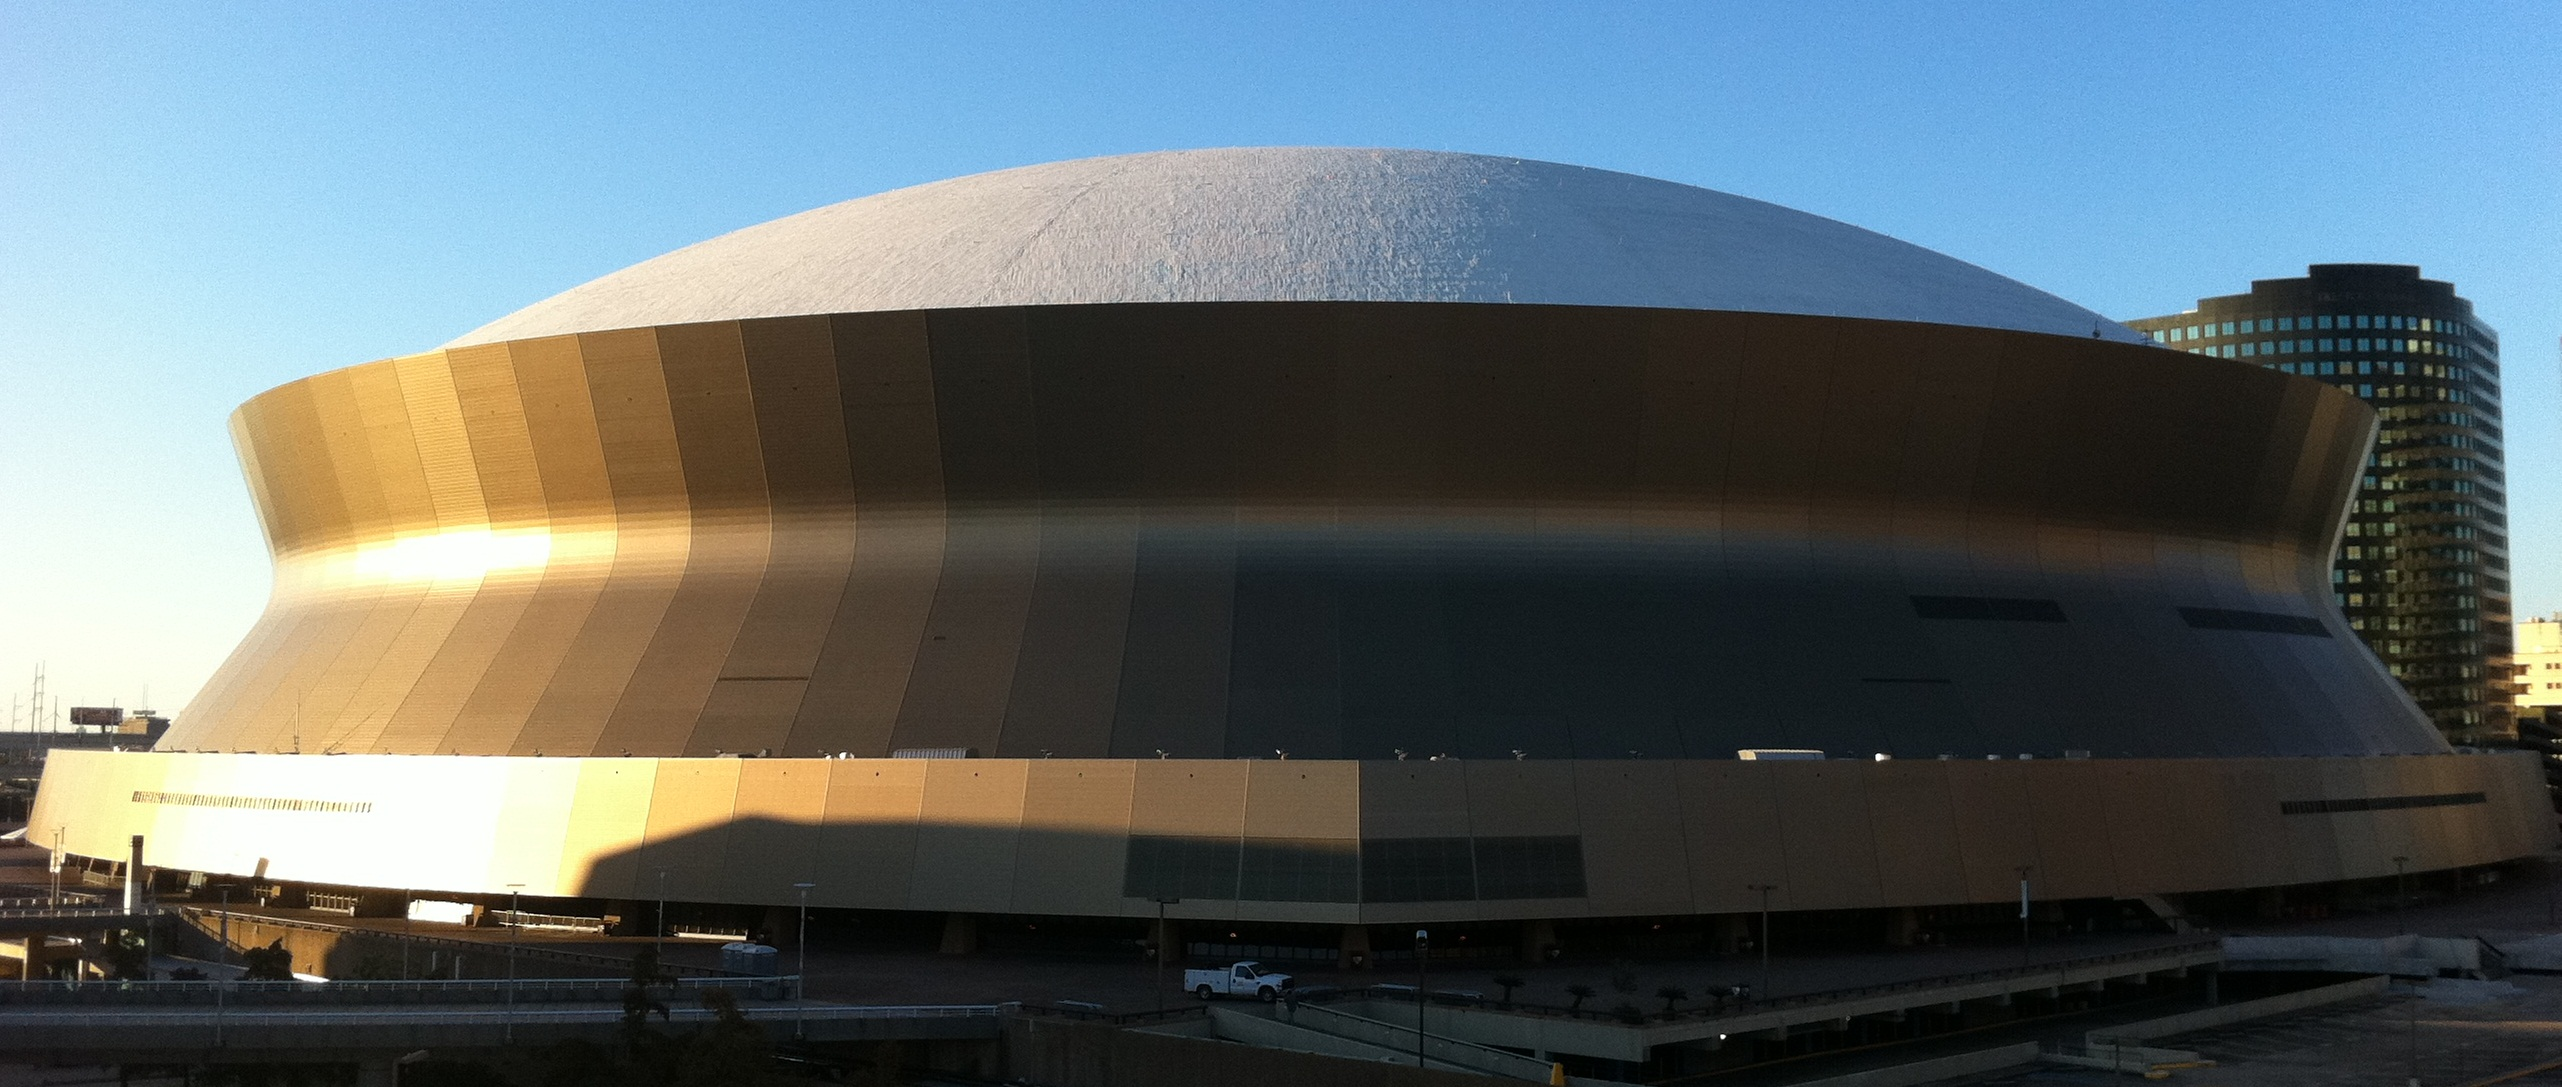 http://upload.wikimedia.org/wikipedia/commons/d/d8/Superdome_from_Garage.jpg